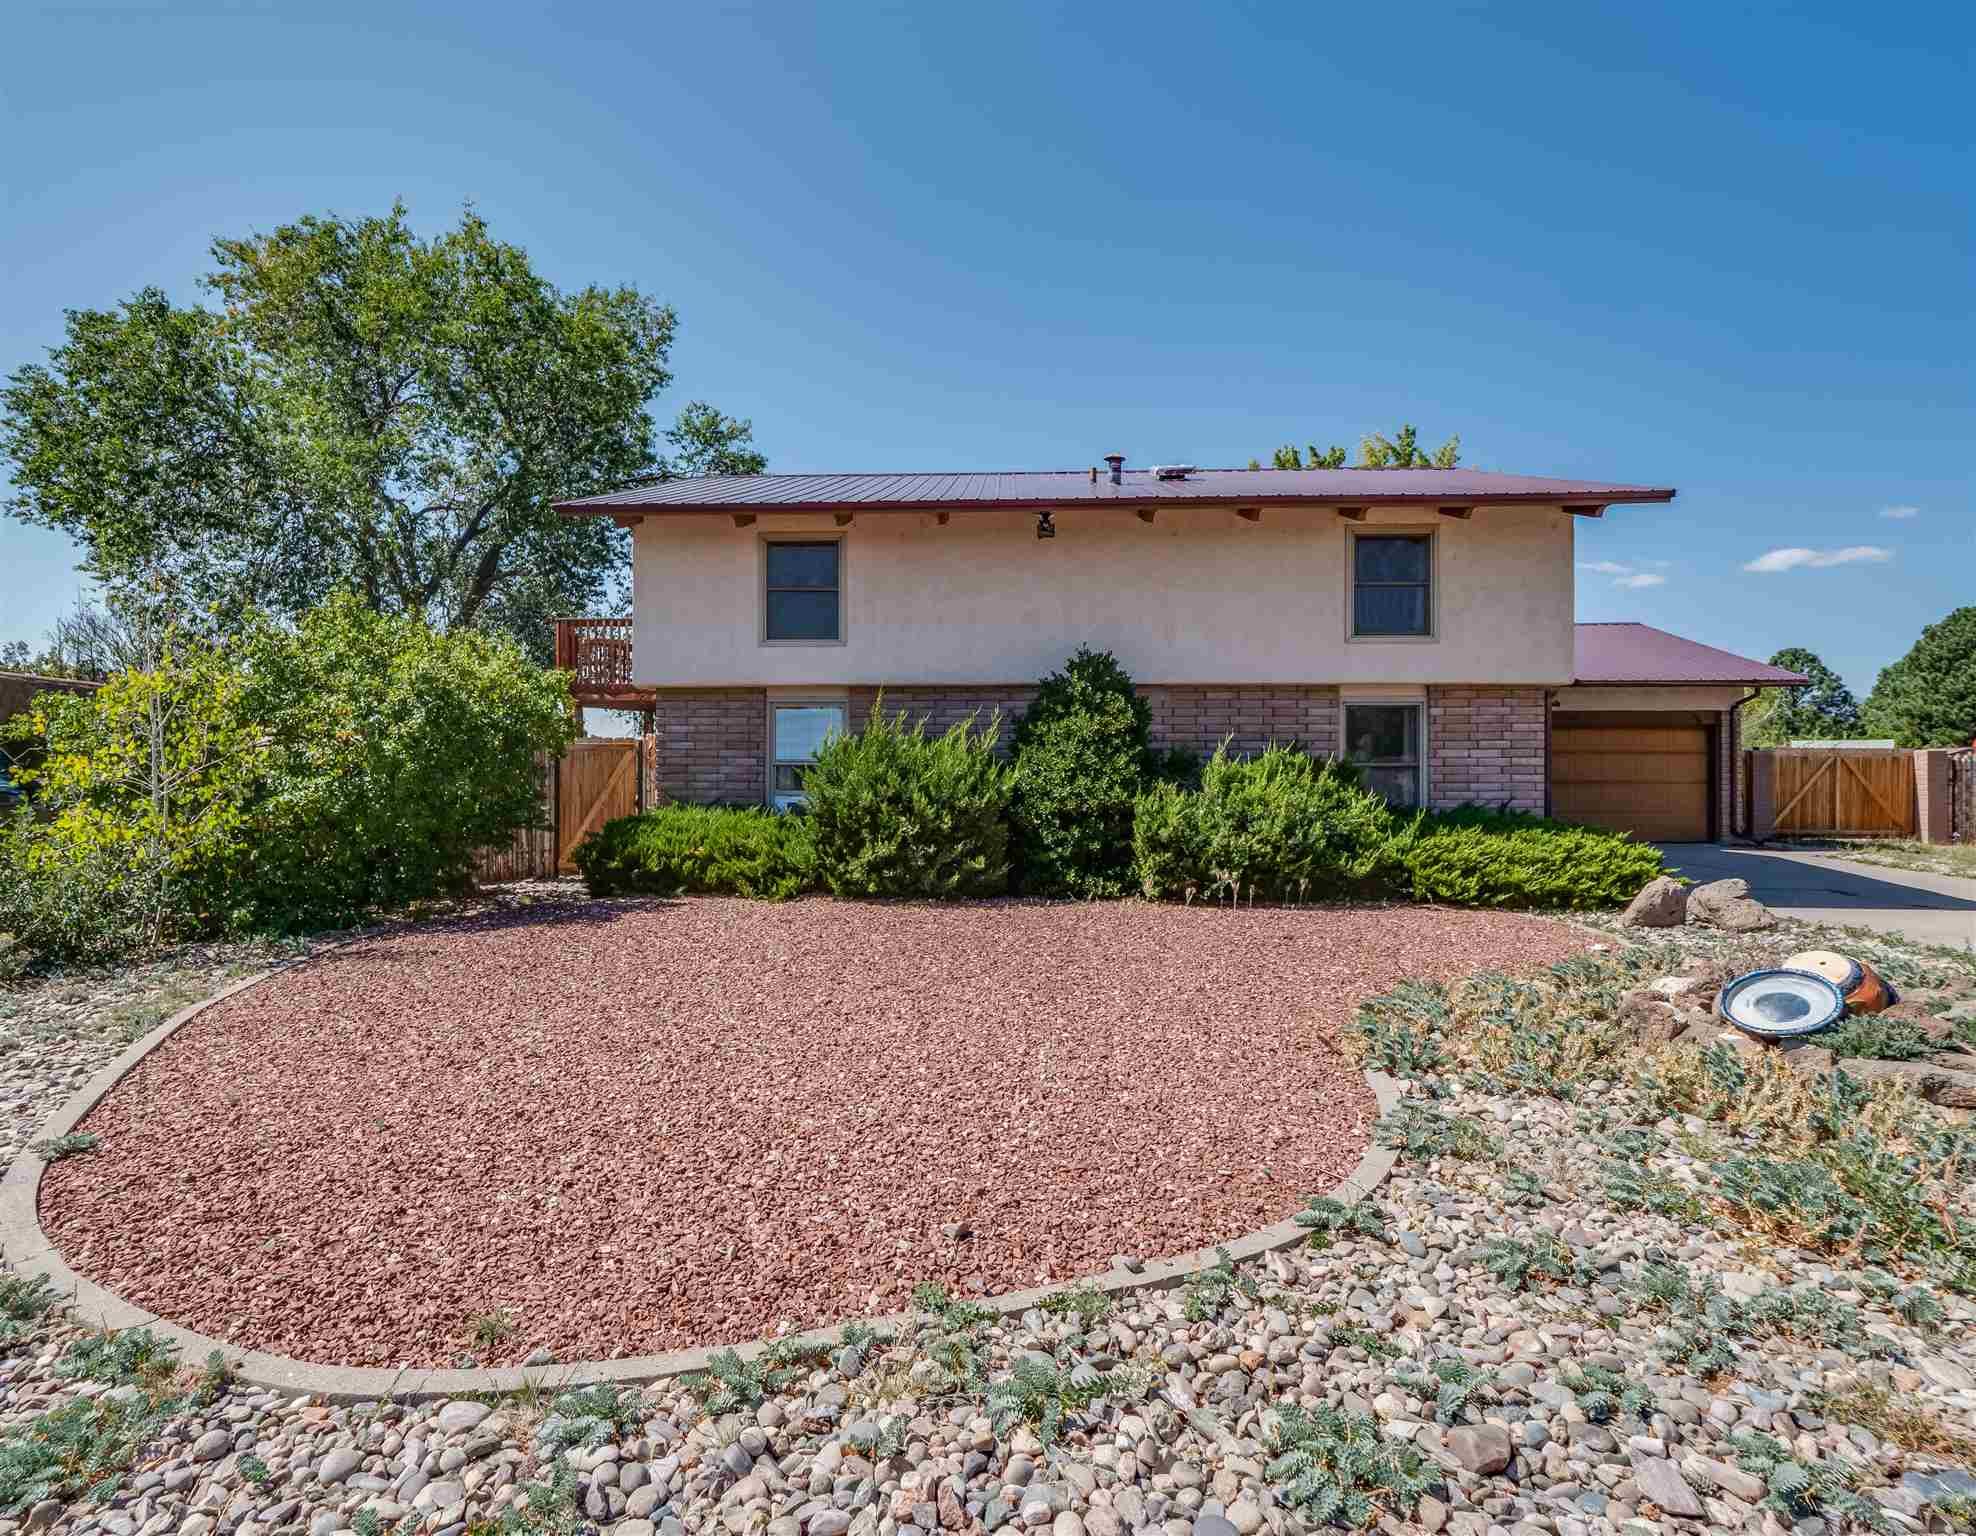 Located on a spacious 0.46 acre lot in a cul-de-sac, this property is not to be overlooked! This home offers a fully fenced backyard with views of the Jemez in addition to a wonderful covered patio space with a high ceiling. A deck can be accessed off the patio as well as from the loft space in the home. From the deck, enjoy nice views of the Sangres to the east extending around to mesas at the south and back to the Jemez in the west. Inside offers an open living space accented by vaulted ceilings and wood beams as well as a wood burning fireplace with built-in wood storage all complemented by rock. Lots of natural light and nice views out back pour in through high windows and impressive three panel slider door to the patio. The living space is open to the dining area which flows into the kitchen. Impressive custom kitchen with stainless appliances including Wolf range and hood and Viking refrigerator. Attractive and ample cabinetry is accented by granite countertops and tile backsplash. Just off the kitchen is a large laundry space with great storage cabinetry and outdoor access. Updated laminate flooring flows throughout the living spaces while tile flooring is found in the kitchen, laundry, and bathrooms. Two versatile guest rooms are located on the main floor with a large guest bath located between. Upstairs leads to an open loft with built-in shelving and French doors to the deck. An additional bedroom upstairs connects to a neat bonus space with full bath nearby.